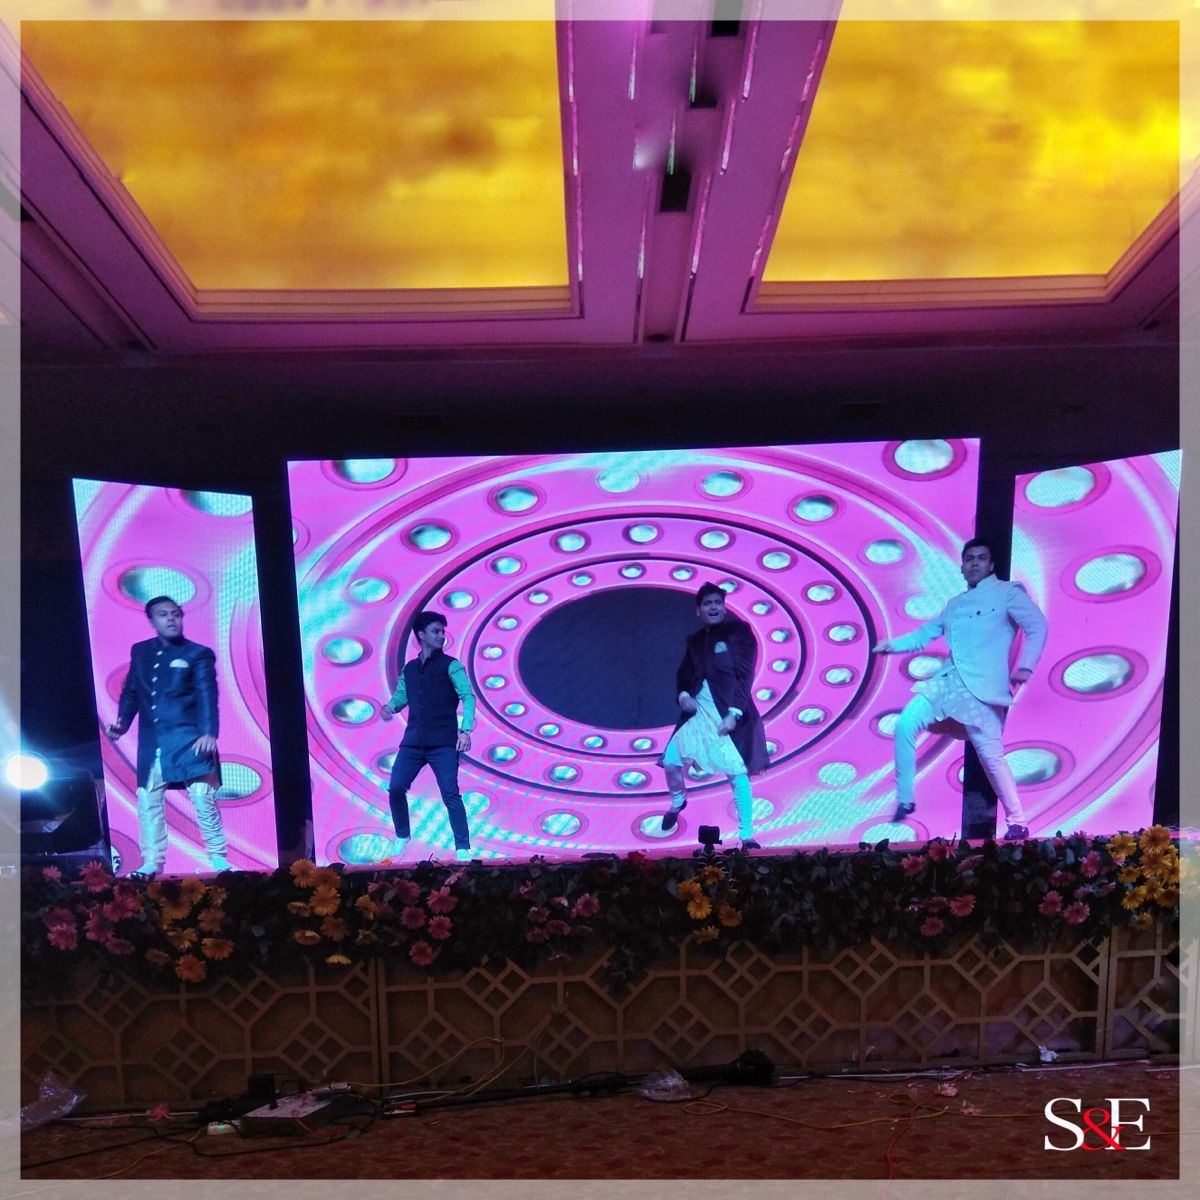 Venue : Entertainment Paradise, Chainpura, 302029  Entertainer : Sangeetwalaz & Entertainment  Complimants are queries are WelCome.  Contact Sangeetwalaz@gmx.com +91 8824668114 +91 8949826860  #corporate #events #corporateevents #event #wedding #party #eventplanner #love #photography #design #weddings #entertainment #catering #instagood #eventplanning #fun #birthday #video #music #portrait #conference #india #like #photographer #inspiration #happy #photo #professional #food #eventprofs